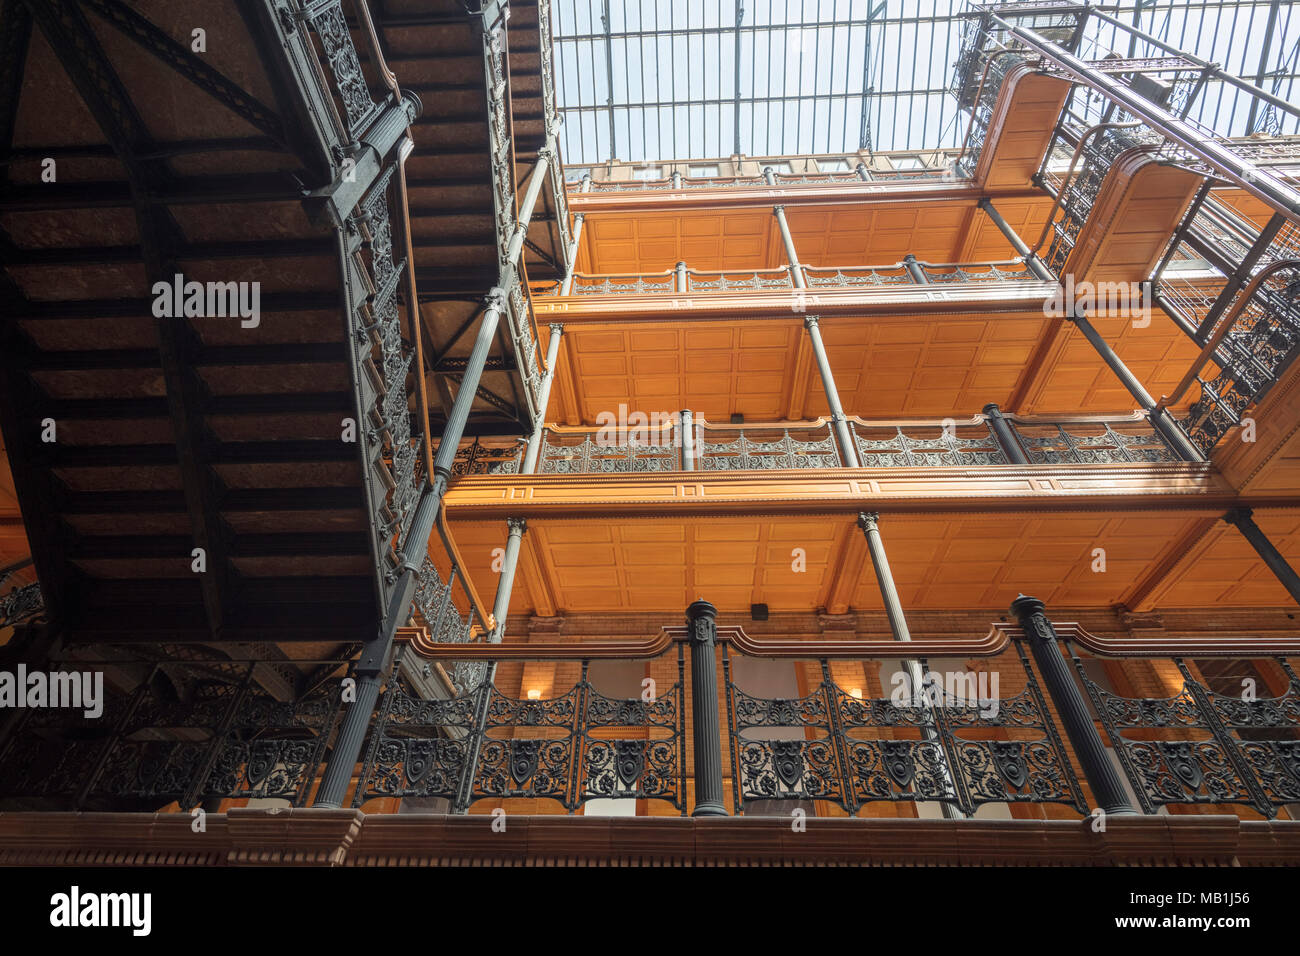 lobby of The Bradbury Building, 304 South Broadway at West